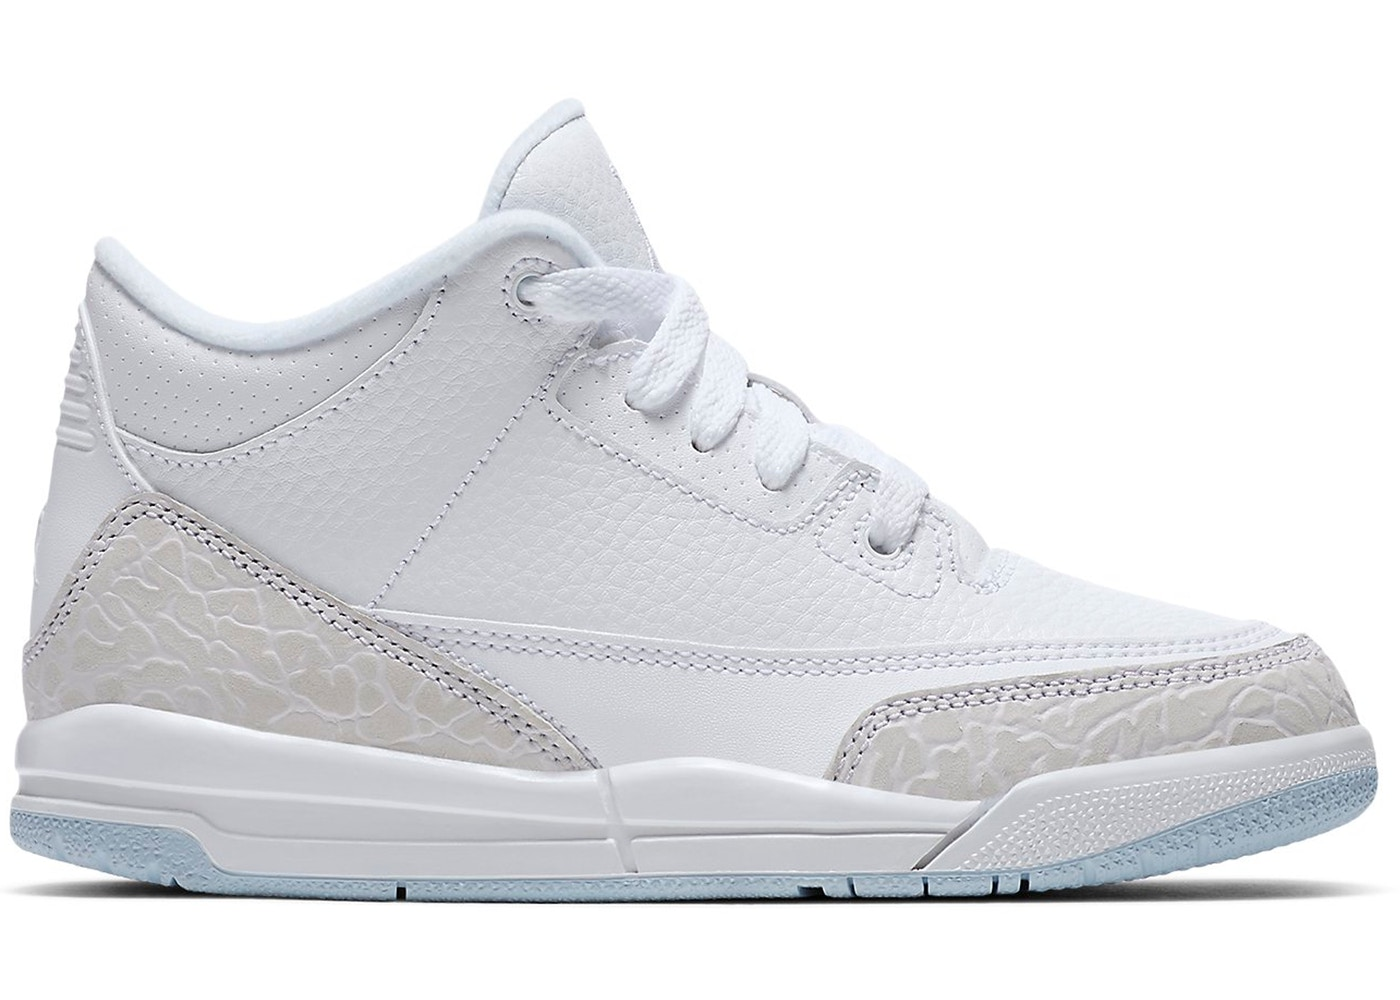 d2826c030a6 Sell. or Ask. Size 2. View All Bids. Jordan 3 Retro Pure White ...